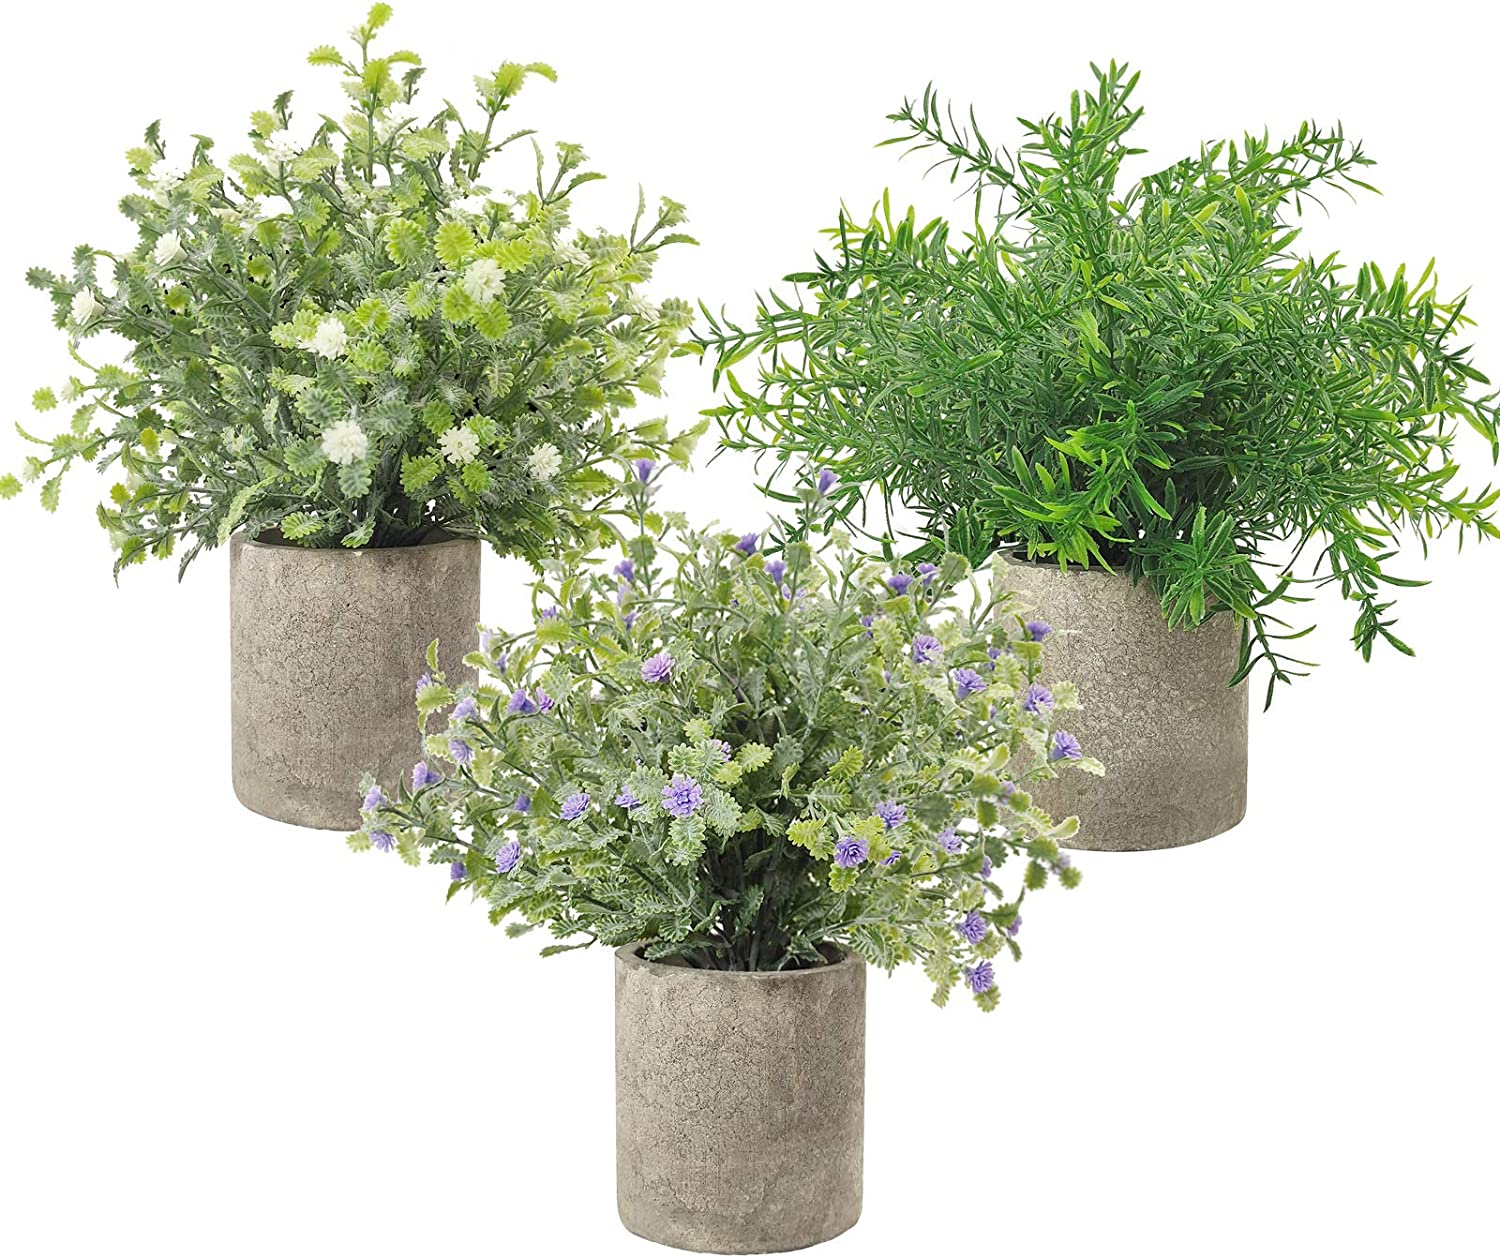 """3 Pack Small Potted Artificial Plastic Plants, Mini Fake Rosemary Plant Faux Flower Houseplants for Home Decor Indoor, 9.5"""" Tall Greenery Plants for Wedding Home Office Desk Garden, Indoor & Outdoor"""